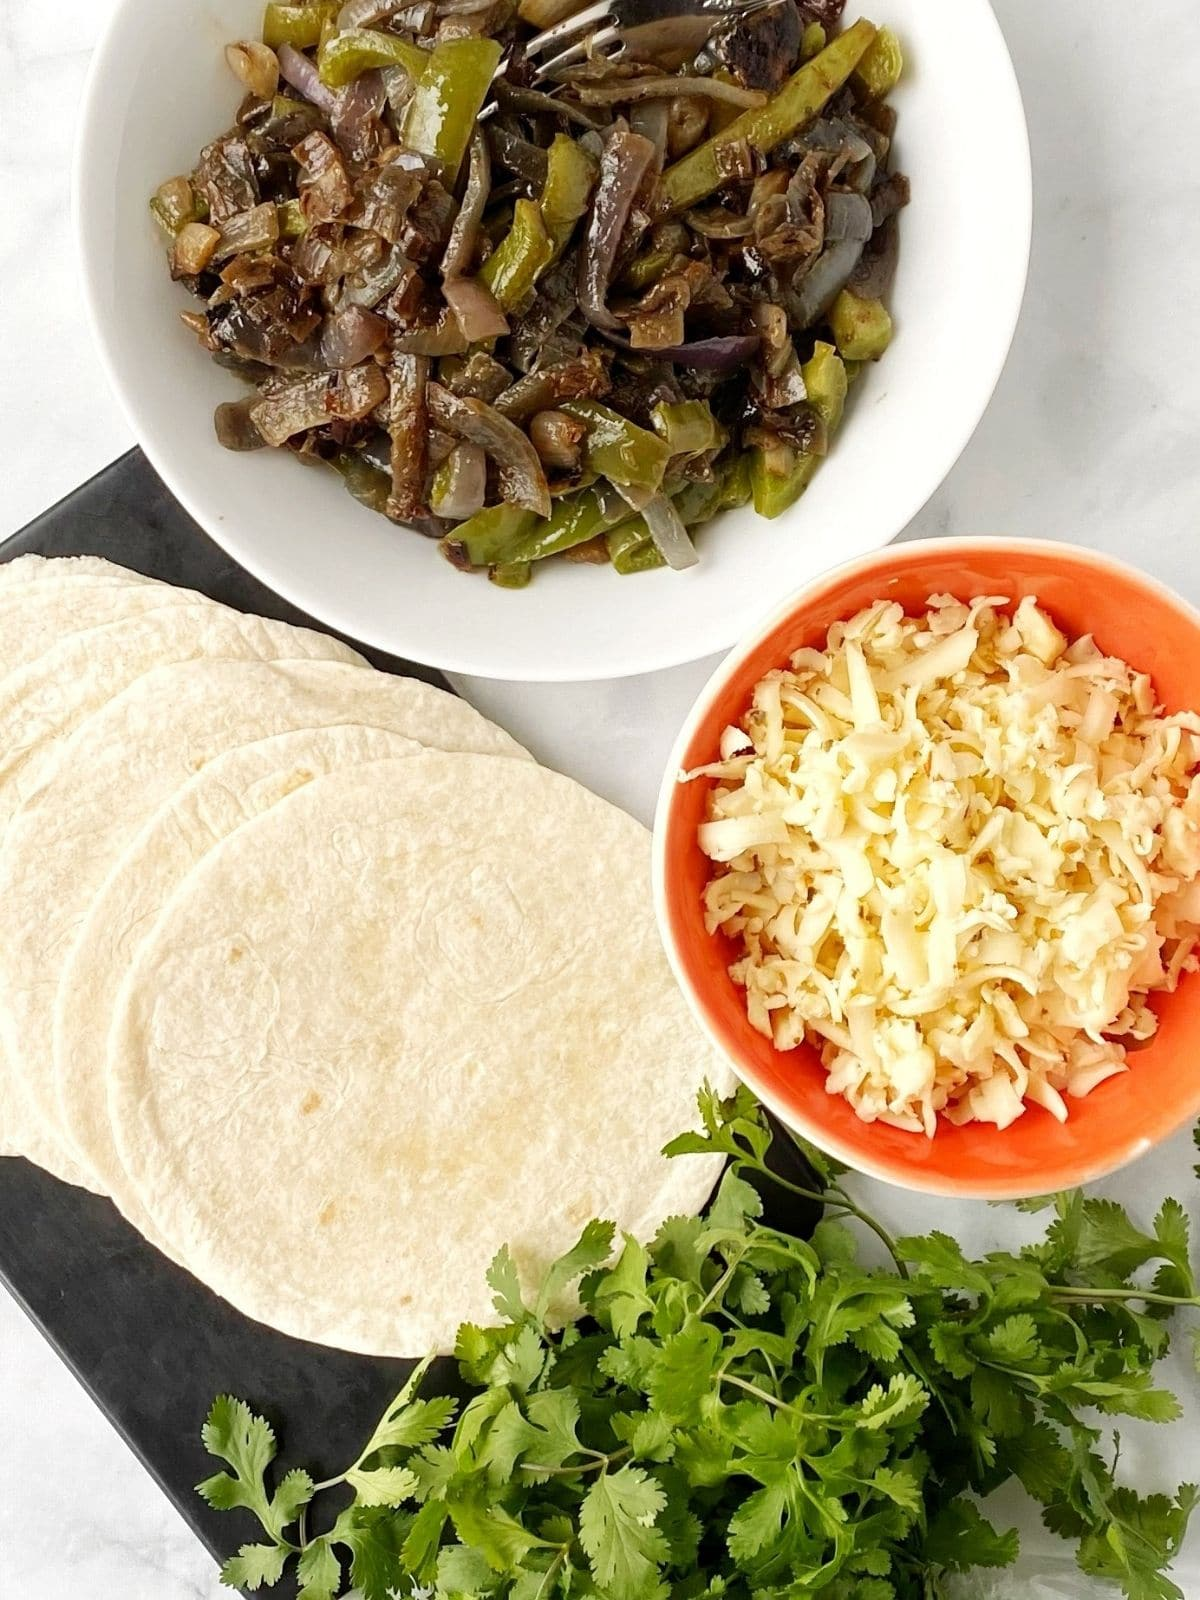 tortillas, cheese, and fajita veggies